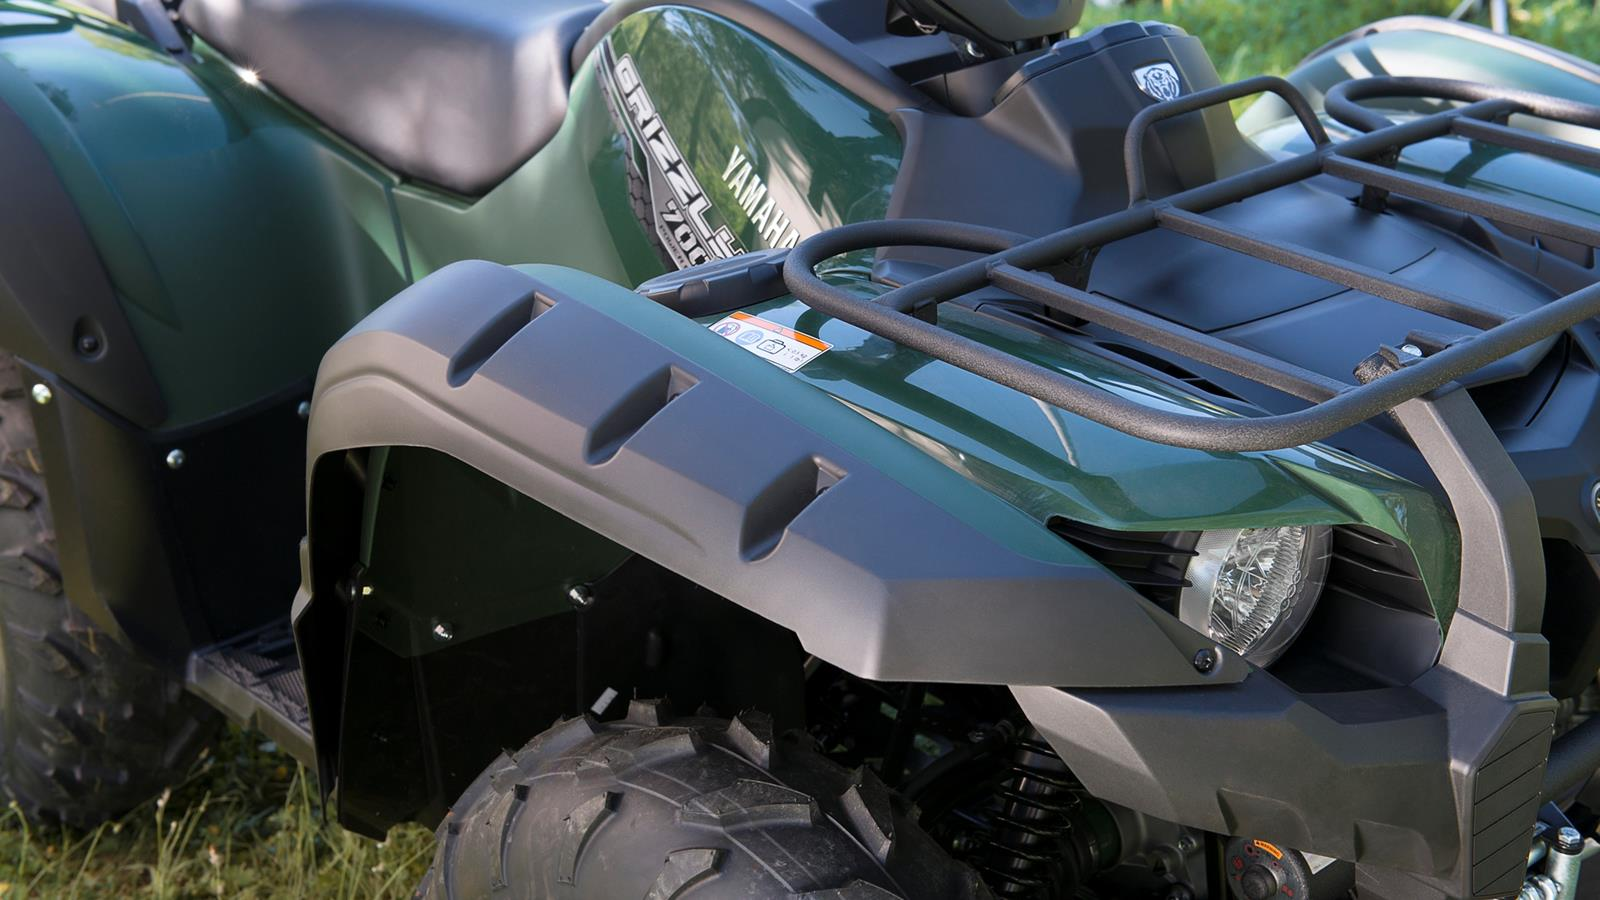 2014-Yamaha-Grizzly-700-EPS-SE-EU-Solid-Green-Detail-008